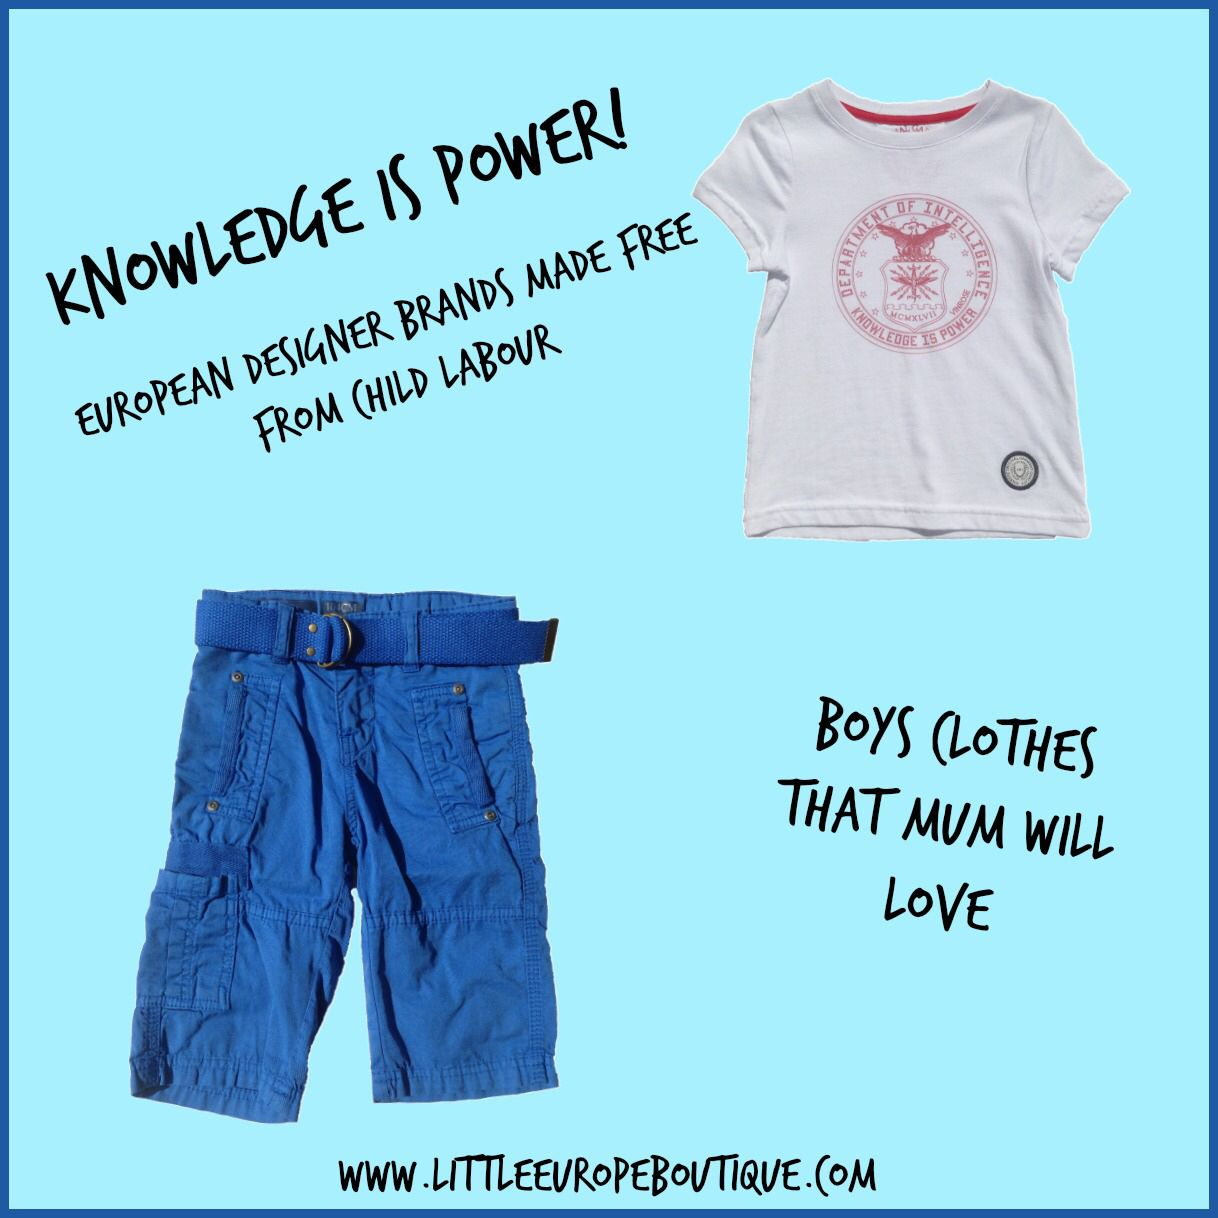 Knowledge is power! Just love this boys outfit by VinRose. European fashion made free from child labour.